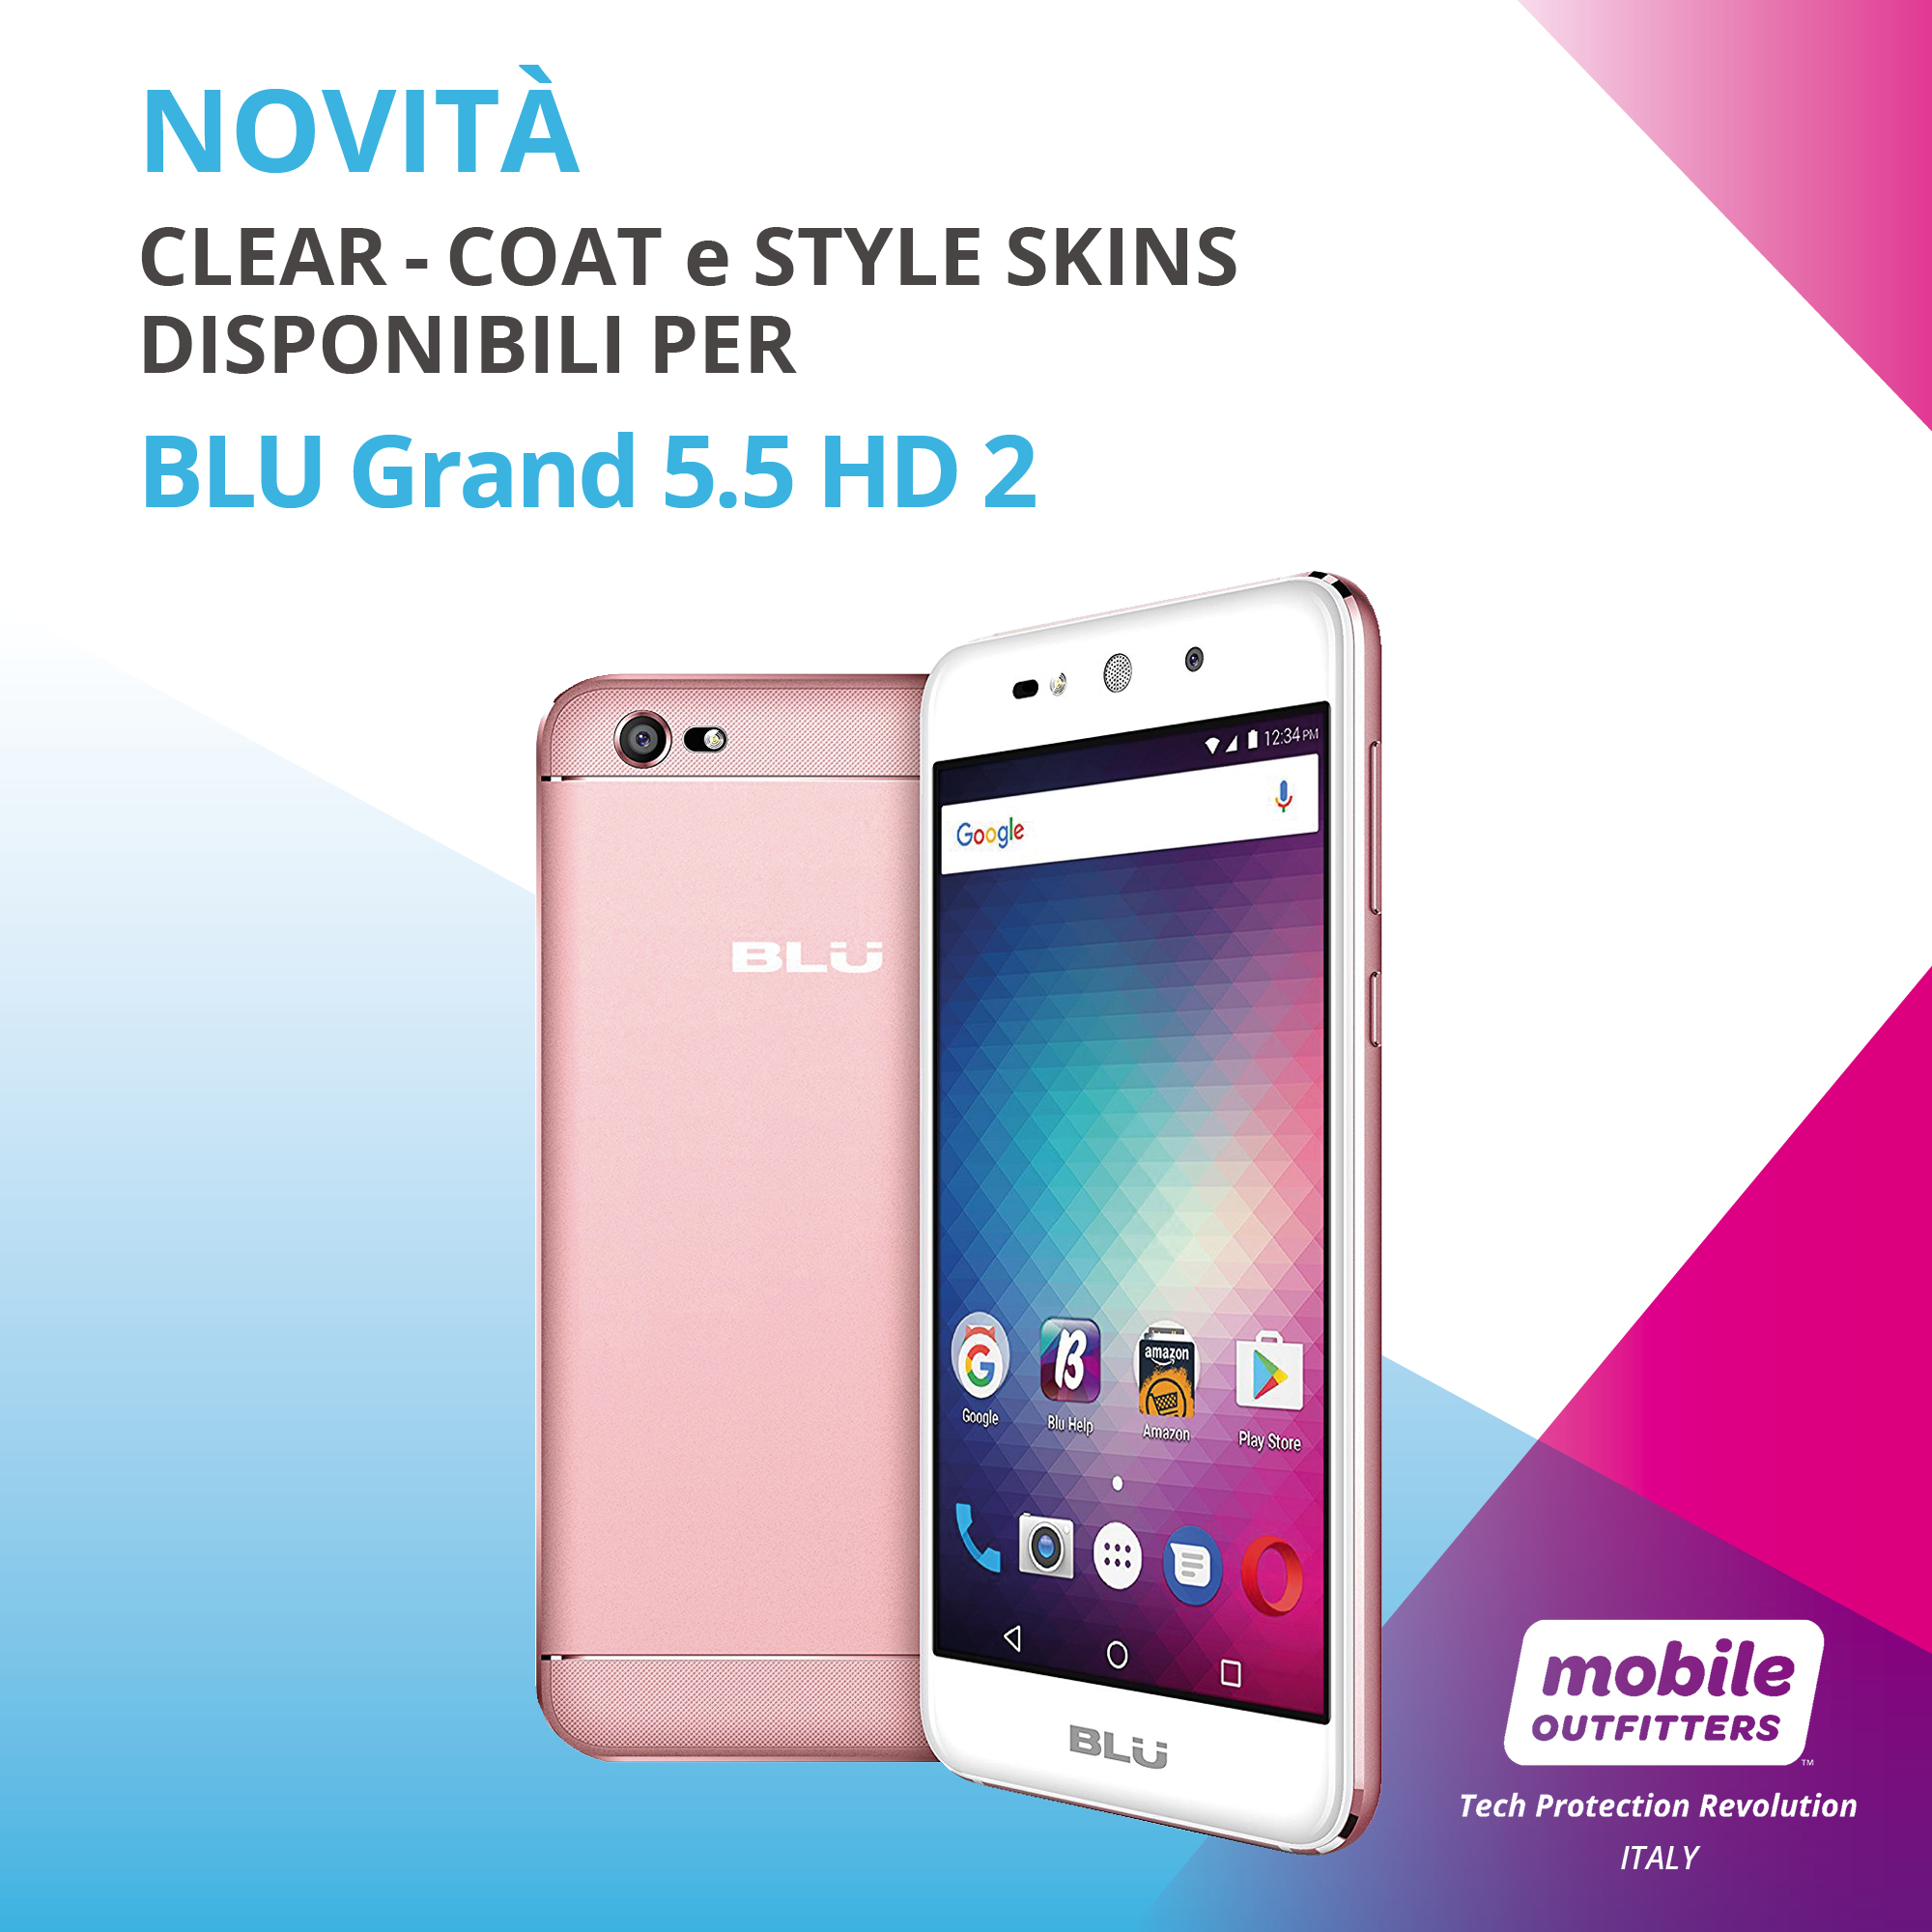 07_06_MOBILE OUTFITTERS_BLU GRAND 5.5 HD 2